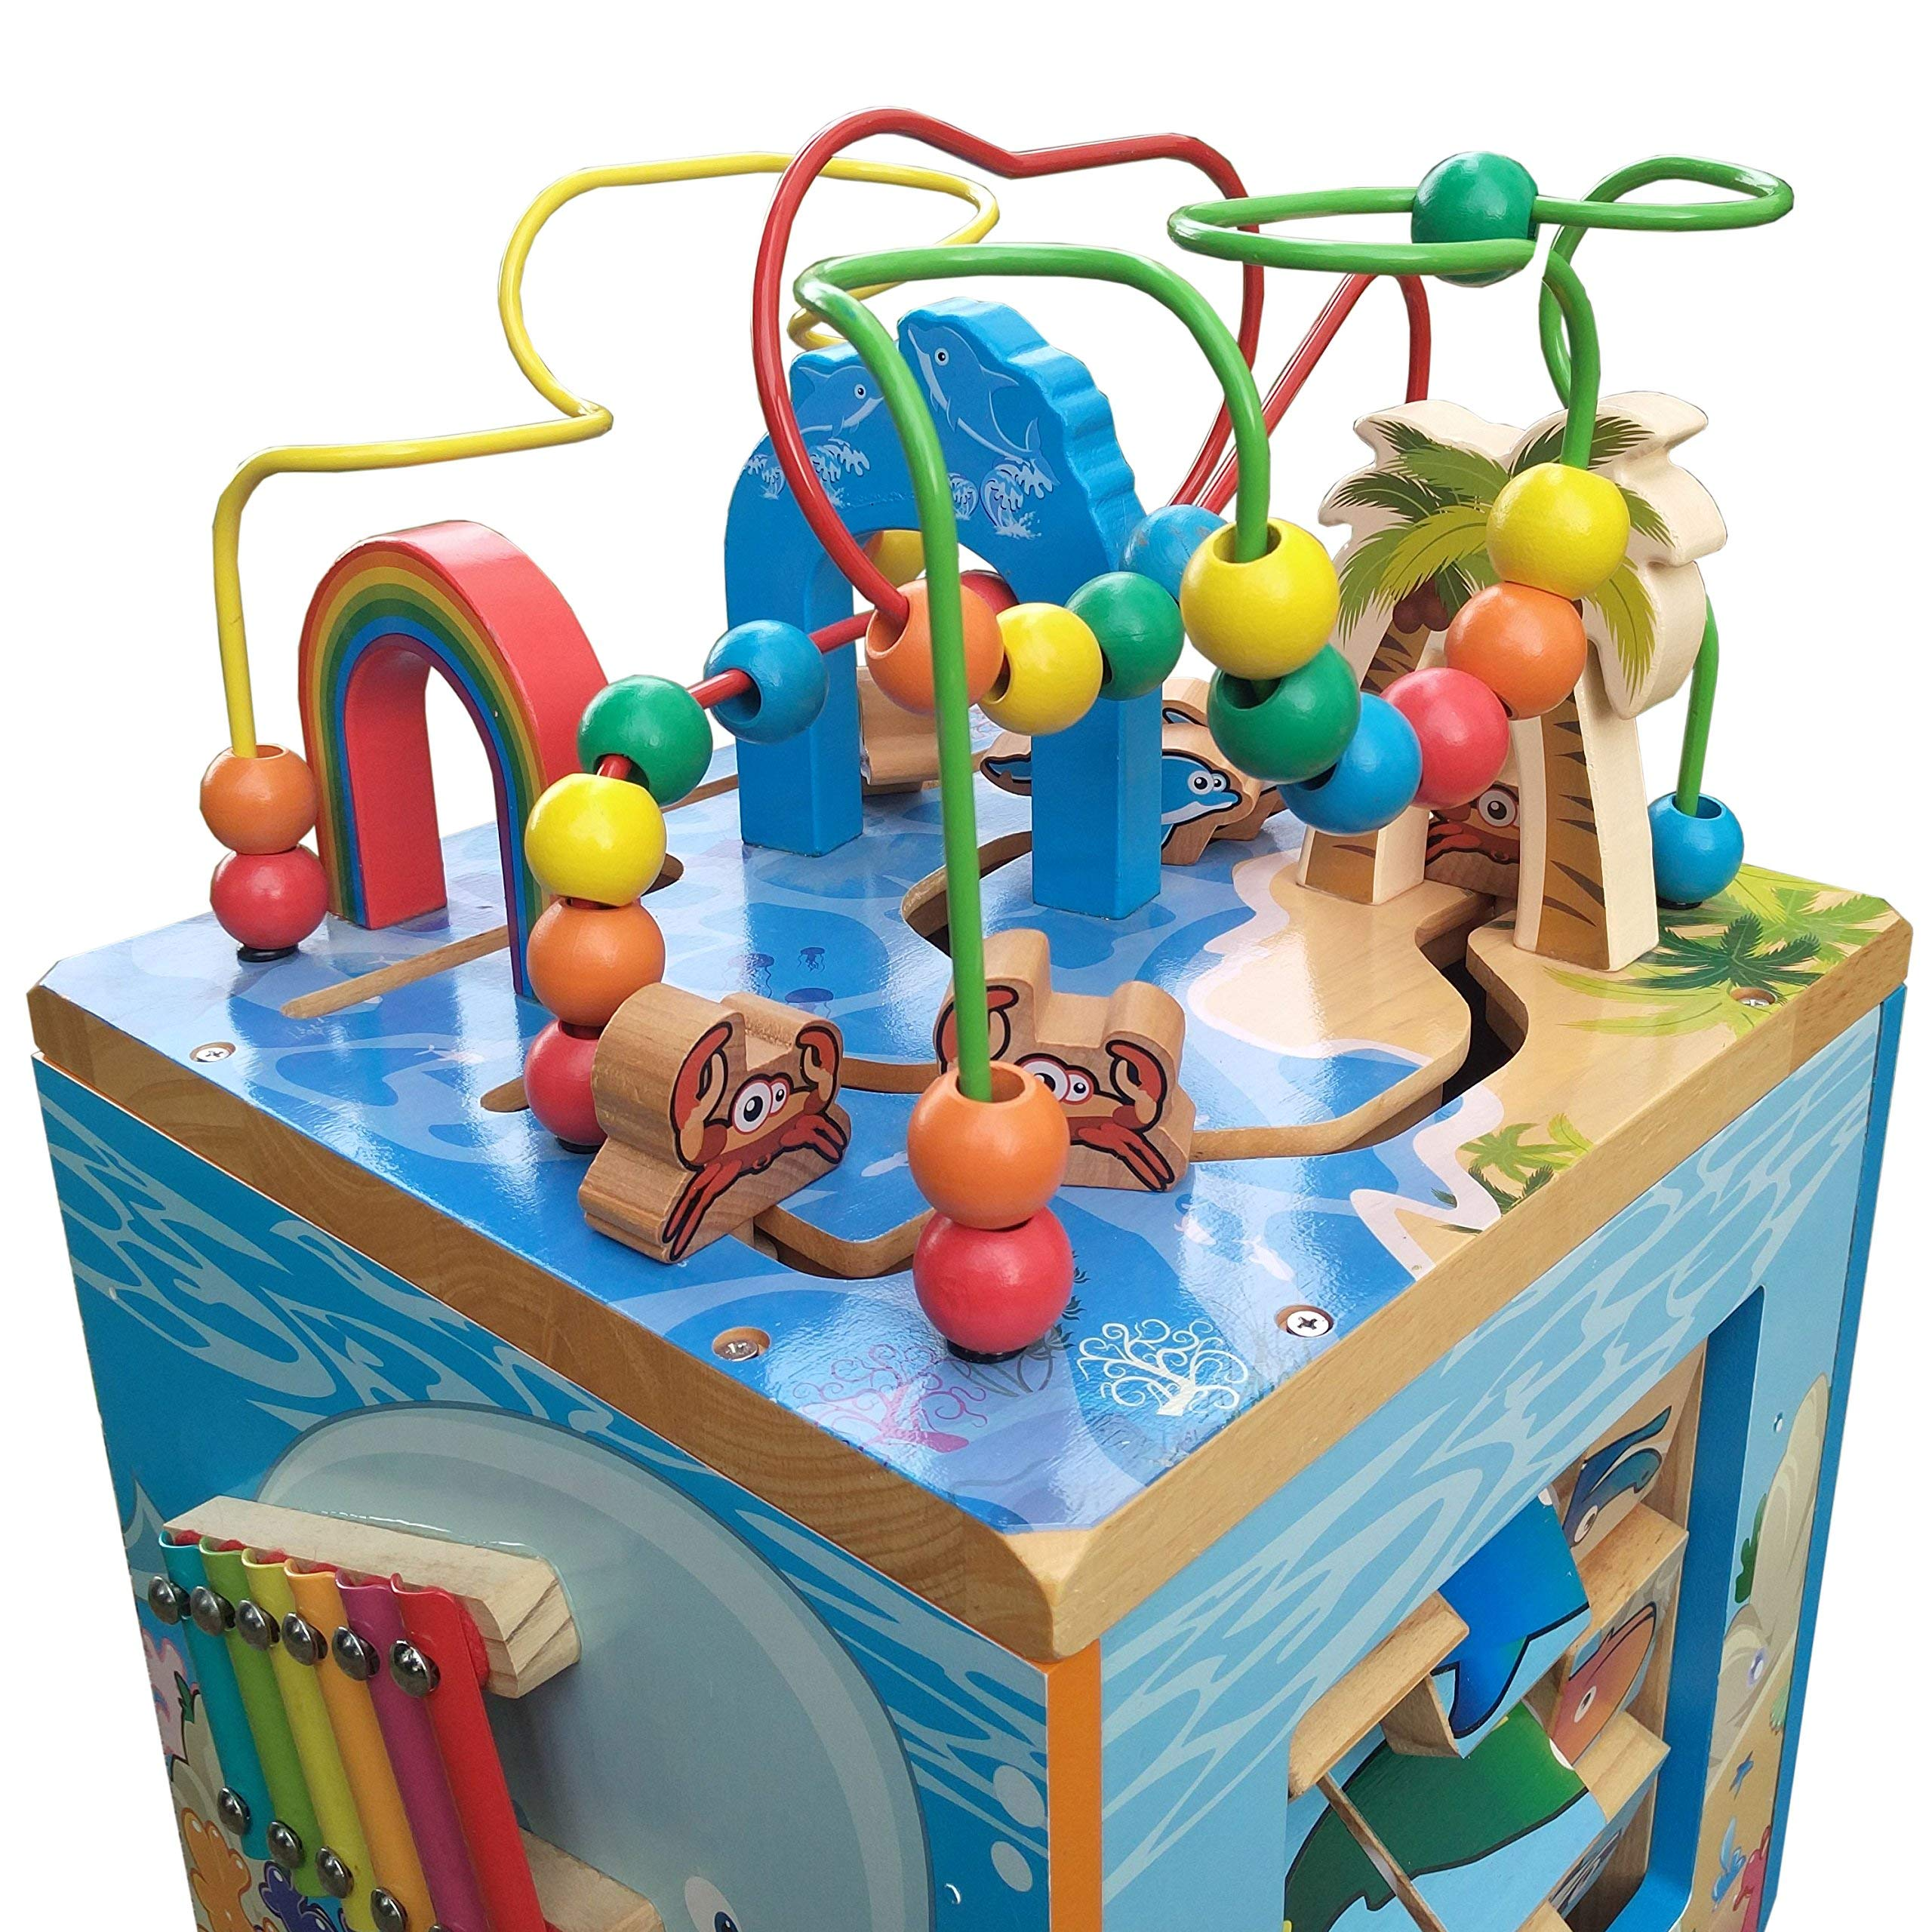 Under The Sea Adventures, Deluxe Activity Wooden Maze Cube - Perfect for Kids Play, Musical Activity, and Toddlers Early Developmental Skills by Pidoko Kids (Image #2)